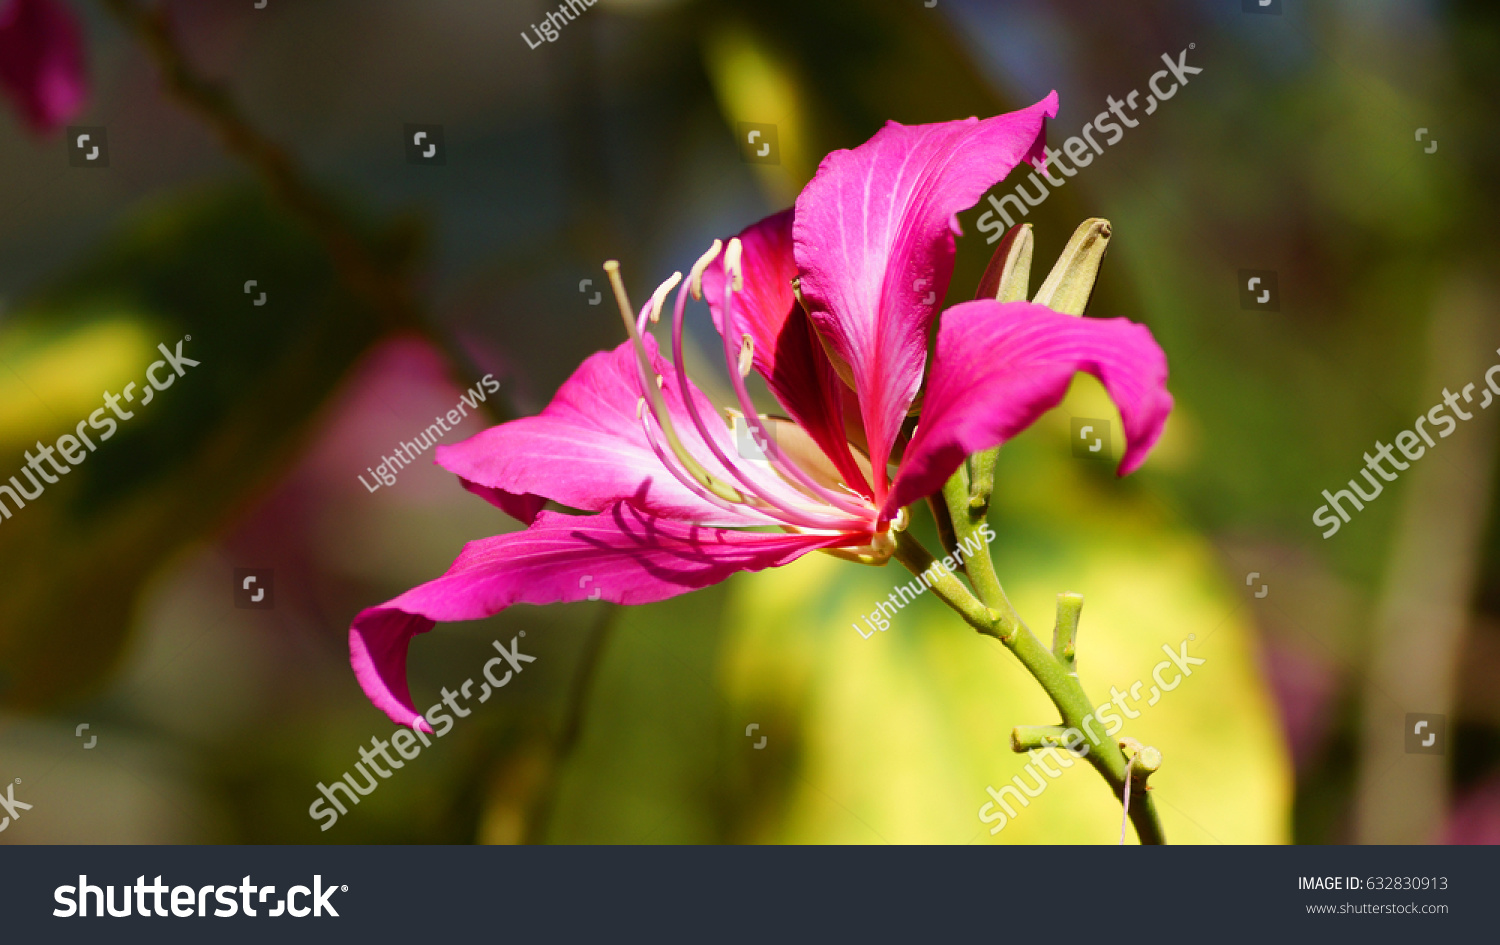 Tropical lily flower in haiti ez canvas id 632830913 izmirmasajfo